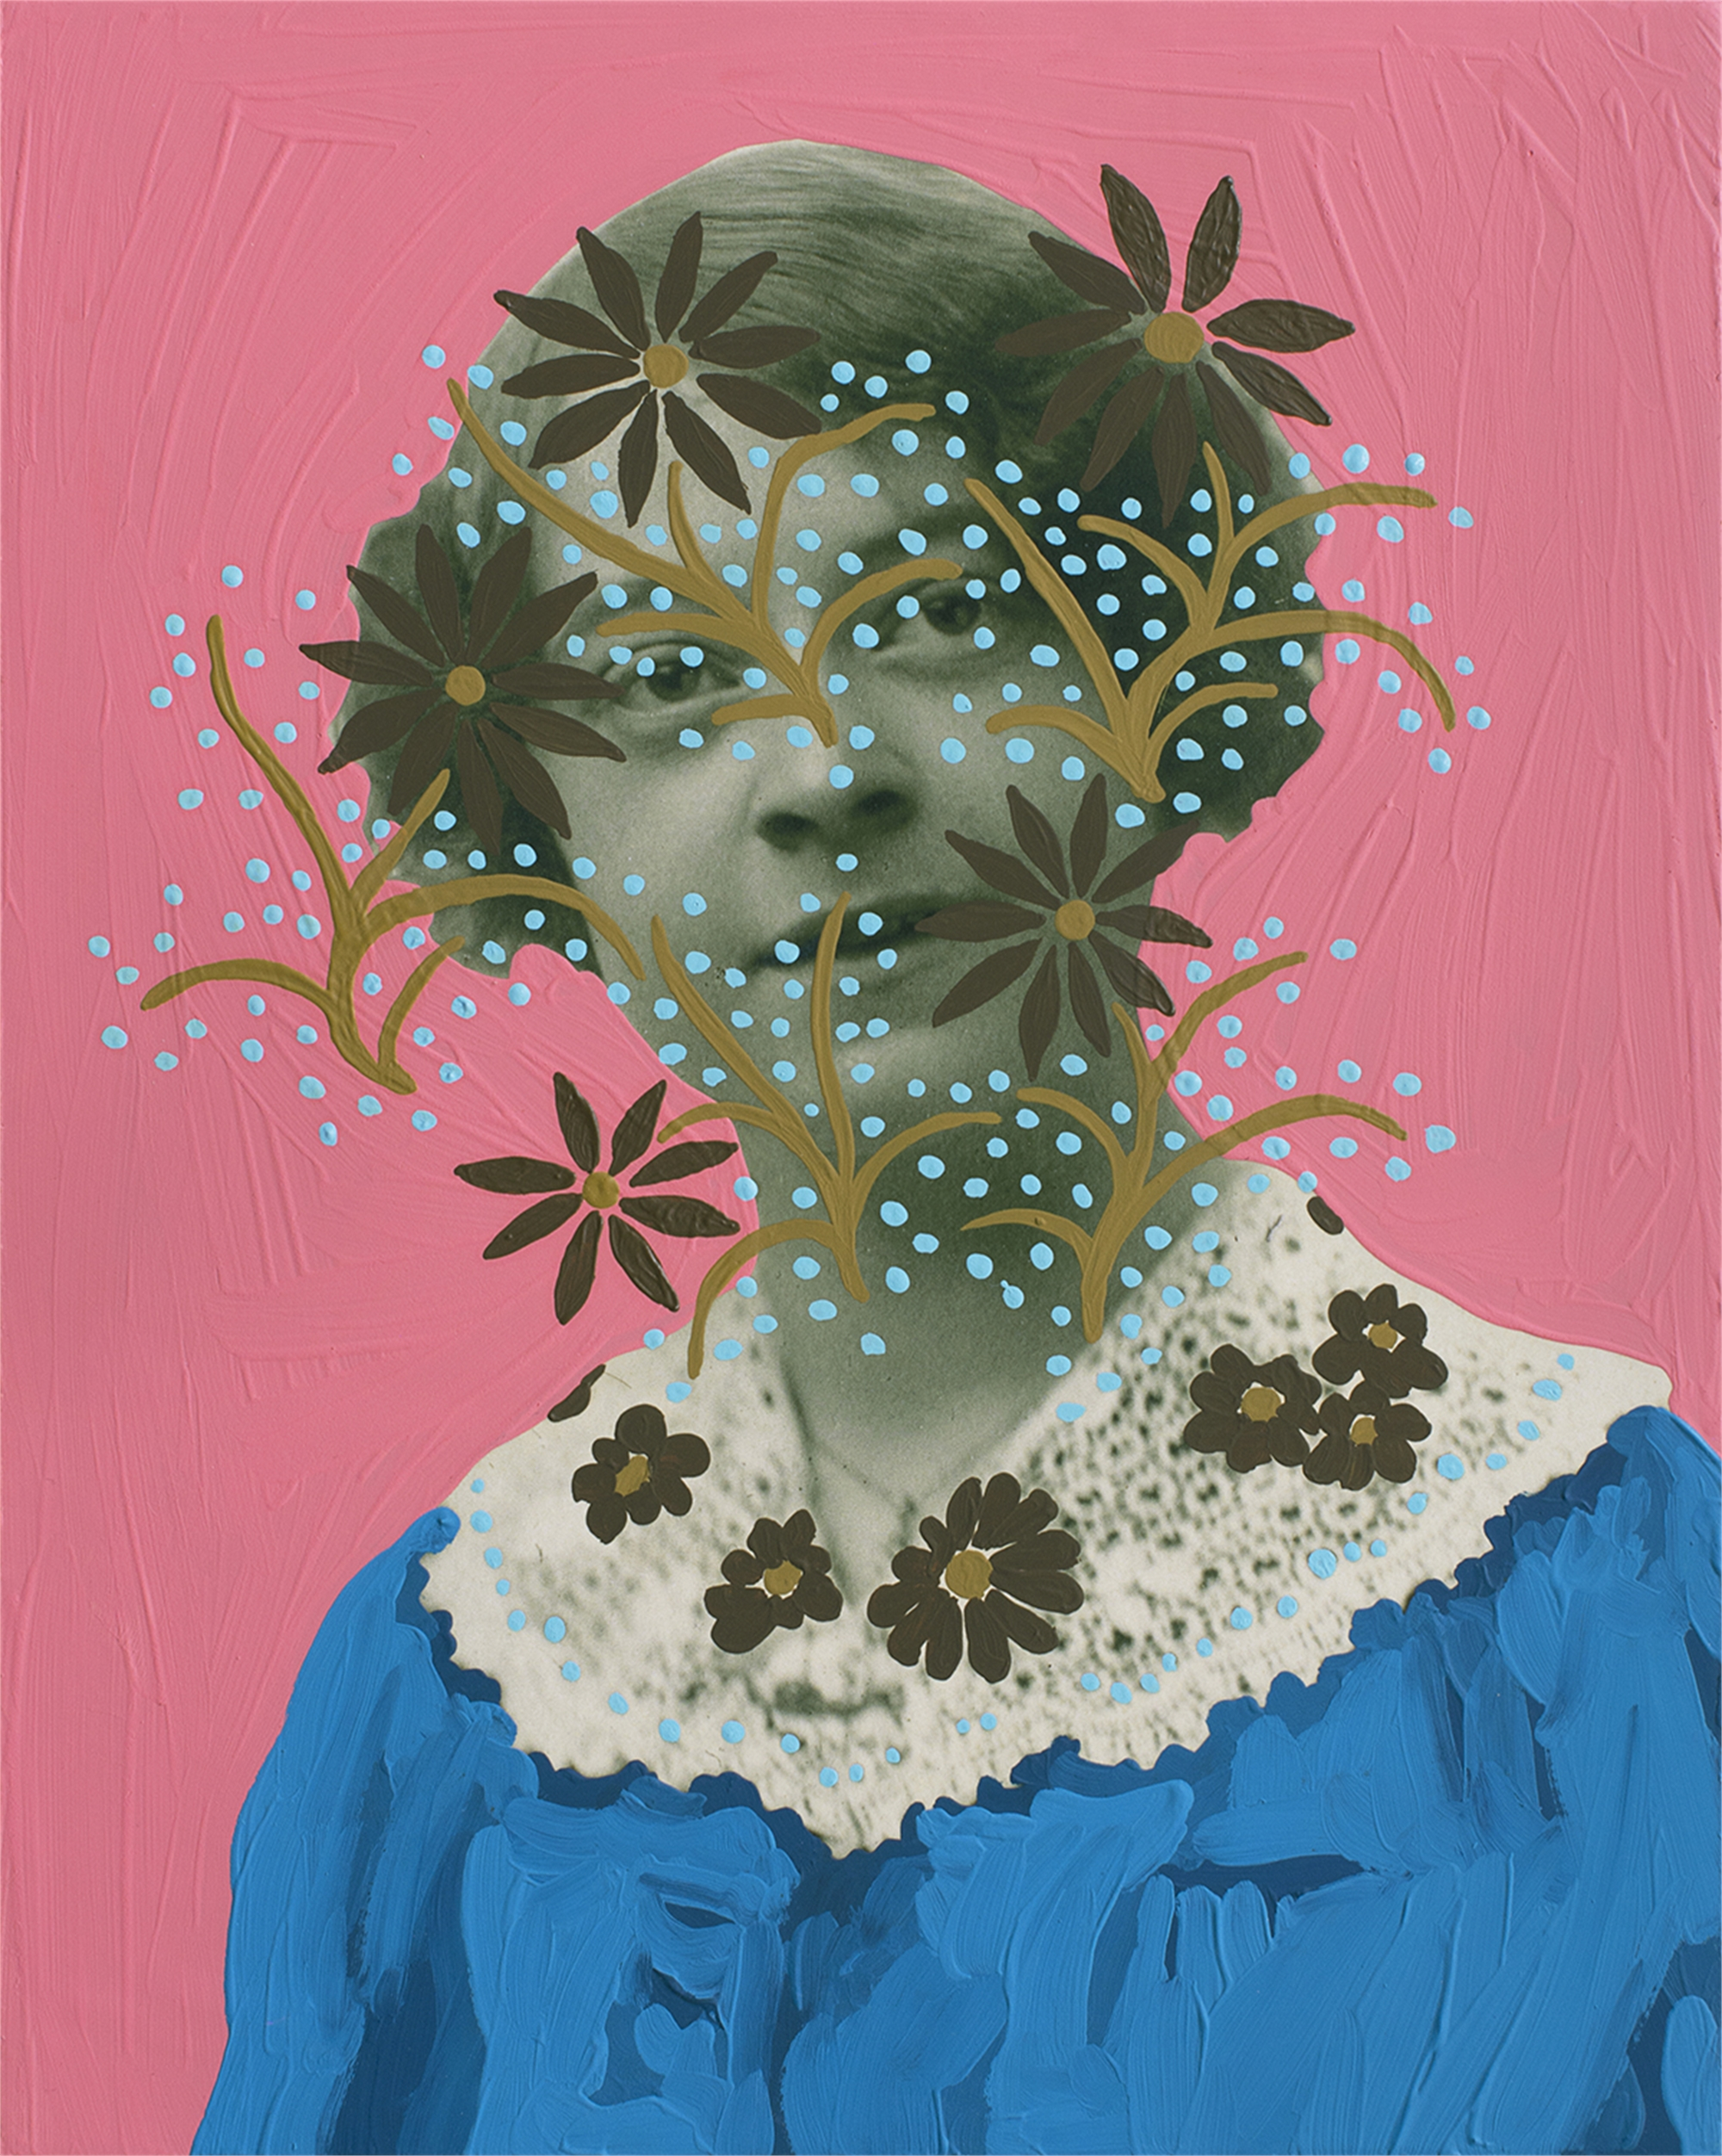 Untitled (Woman with Lace and Flowers) by Daisy Patton